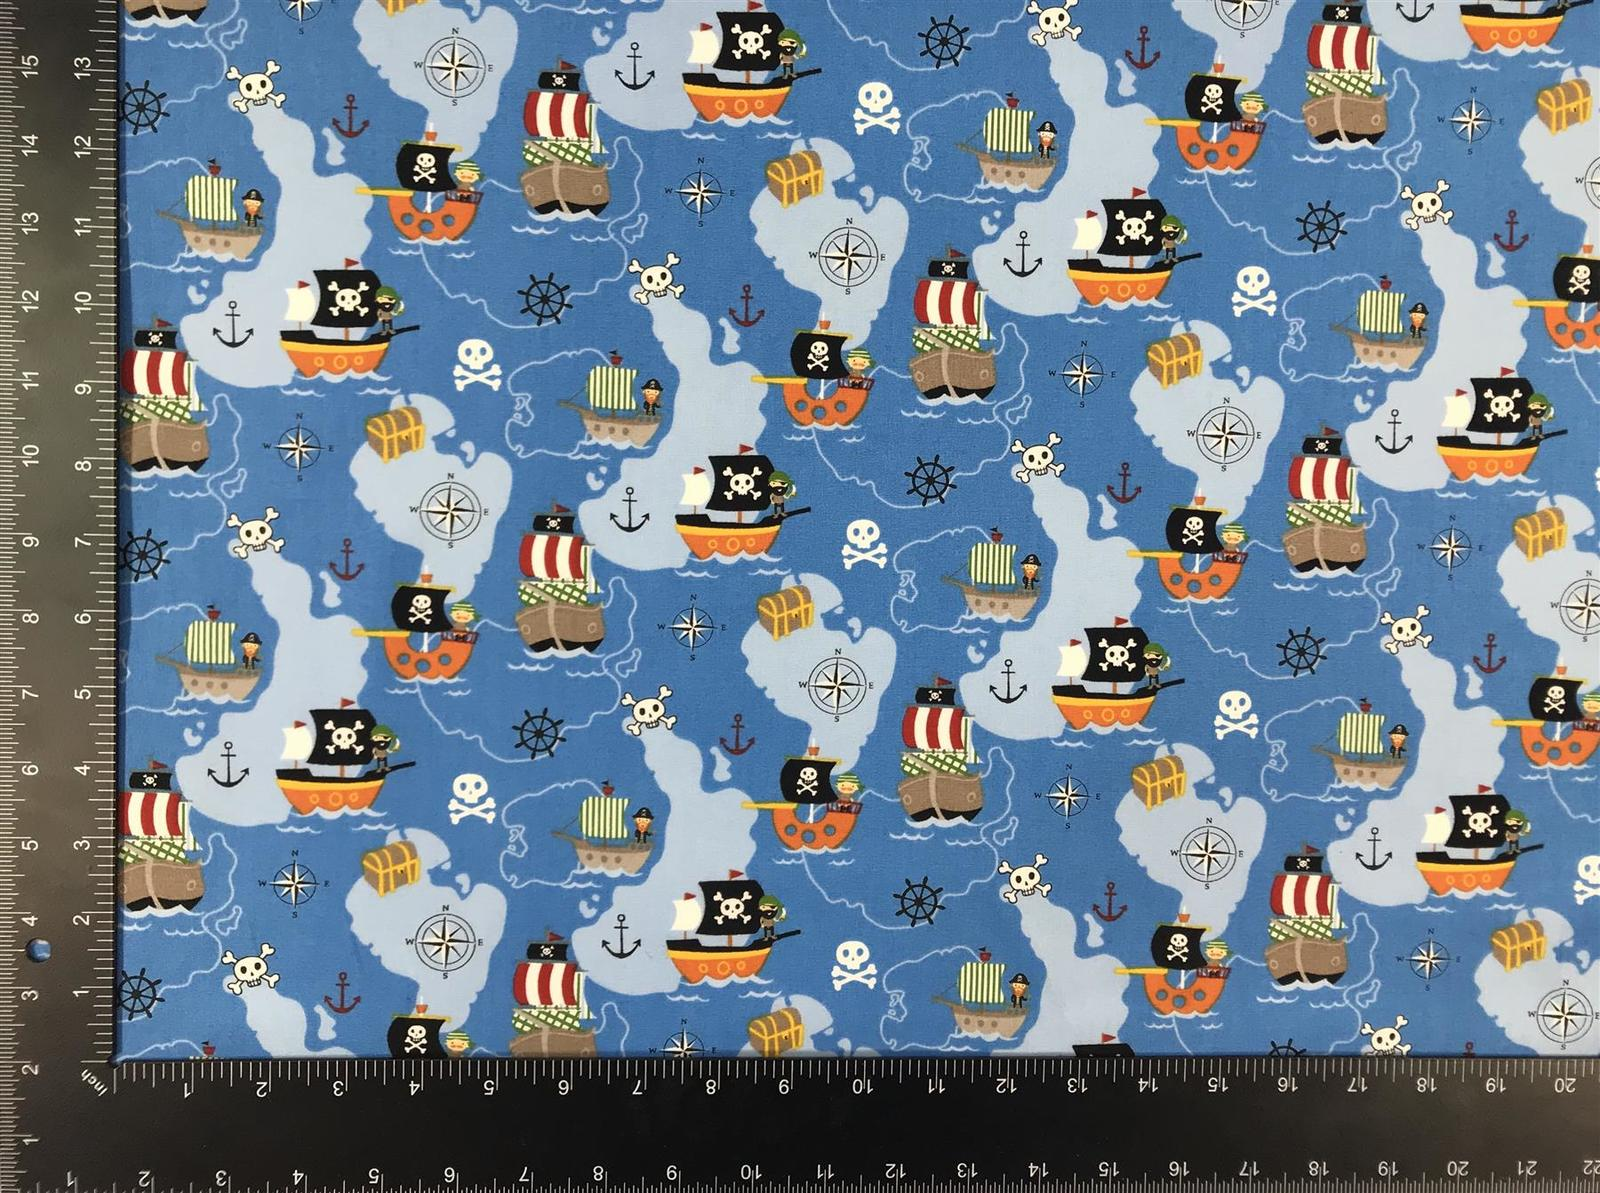 Pirate Ship Island Blue 100% Cotton High Quality Fabric Material *3 Sizes*